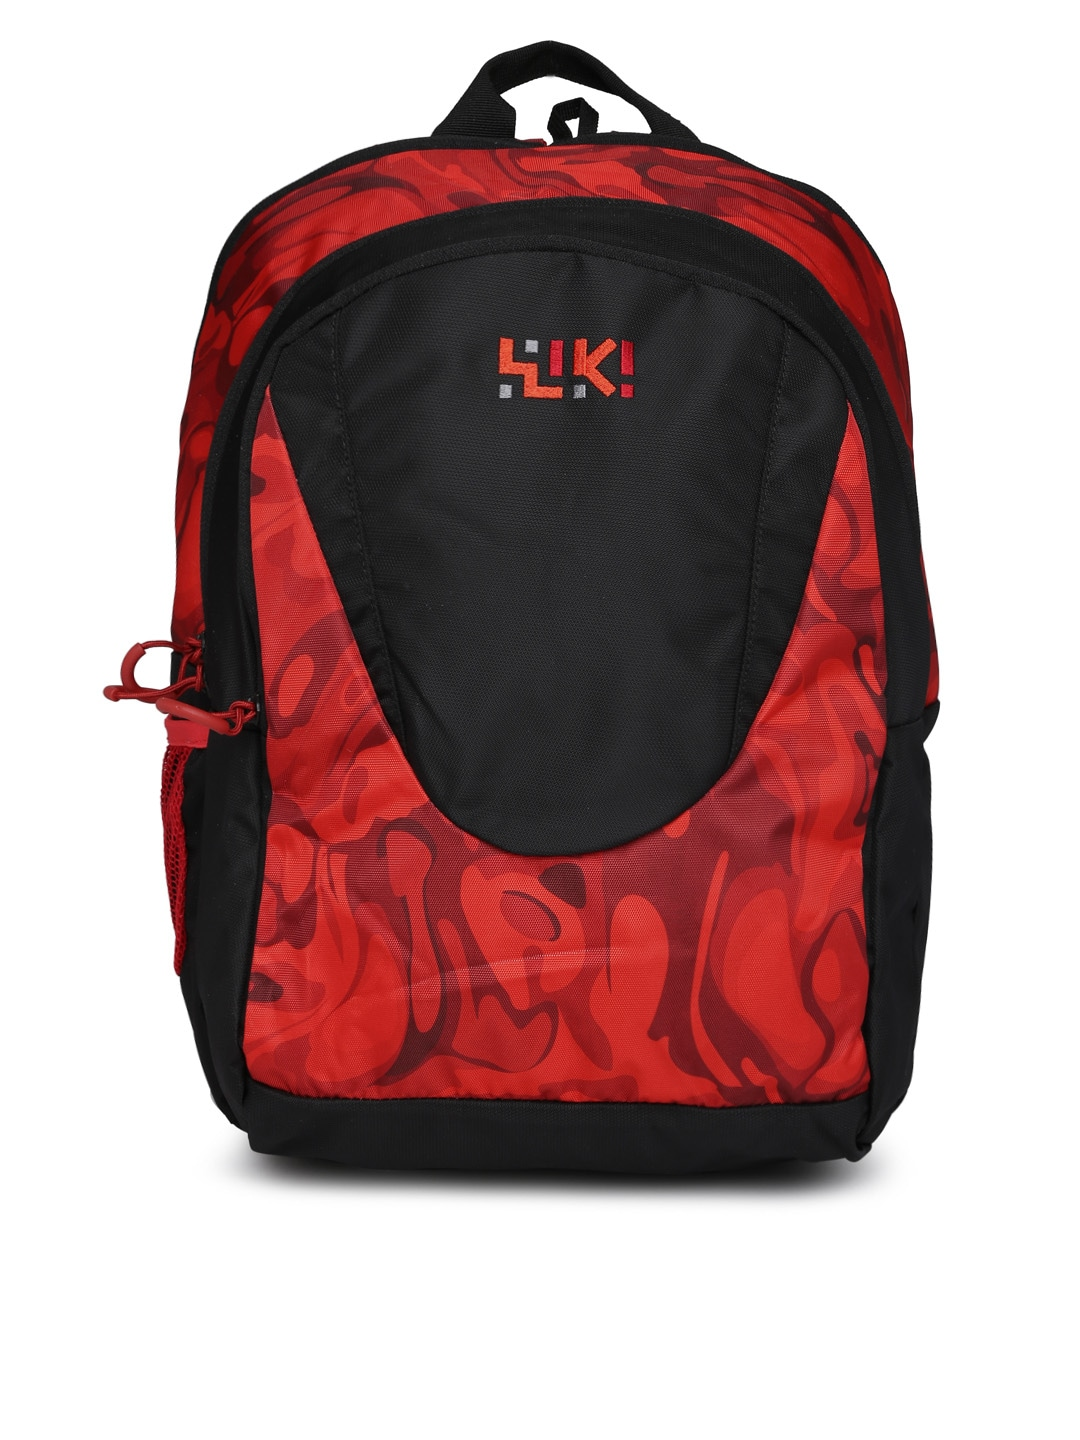 Wiki by Wildcraft Unisex Black & Red Printed Backpack